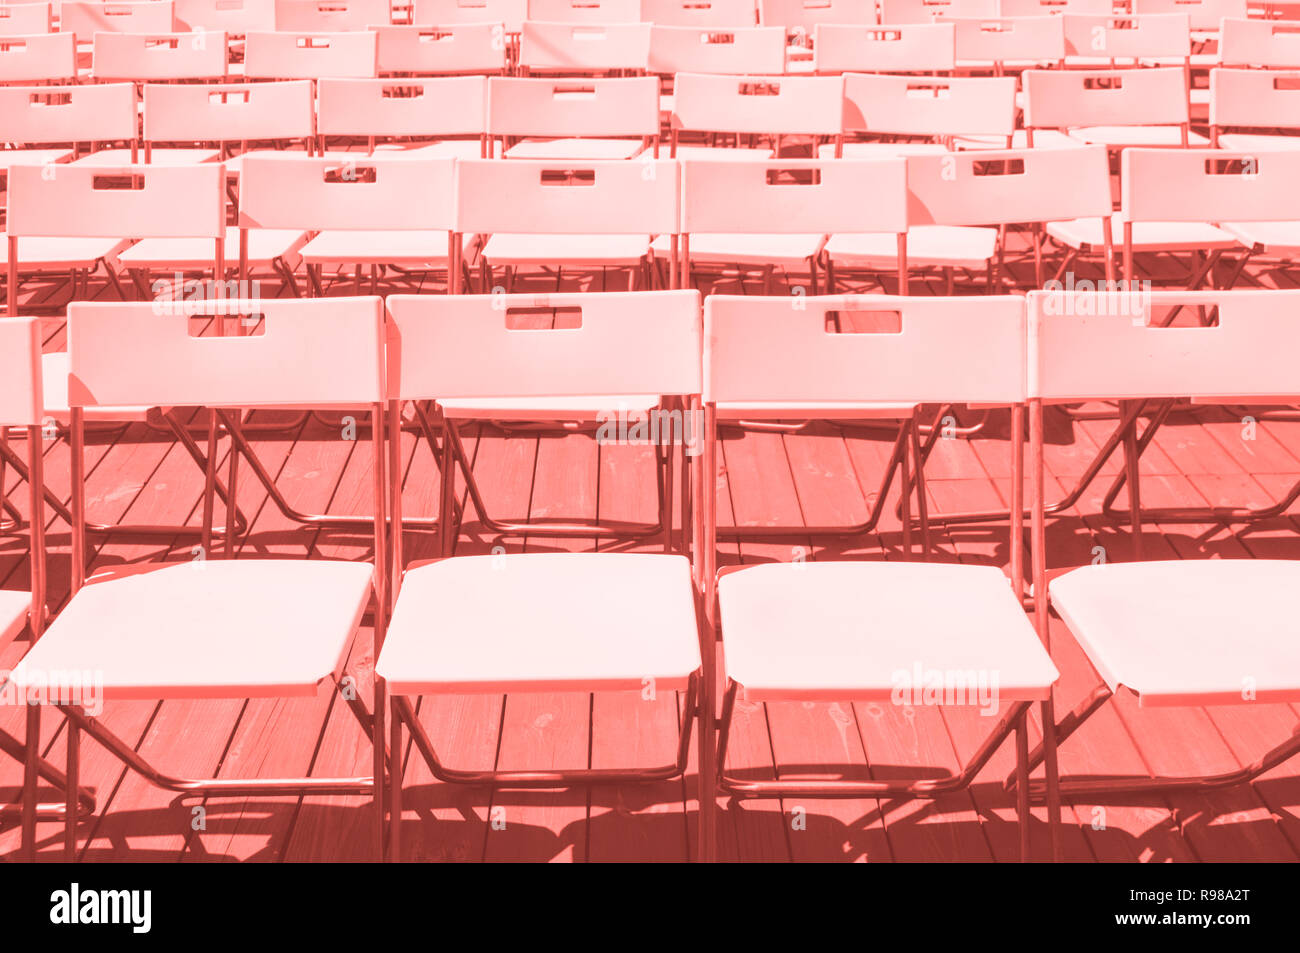 Rows of plastic chairs of coral color inspired py color of 2019. - Stock Image